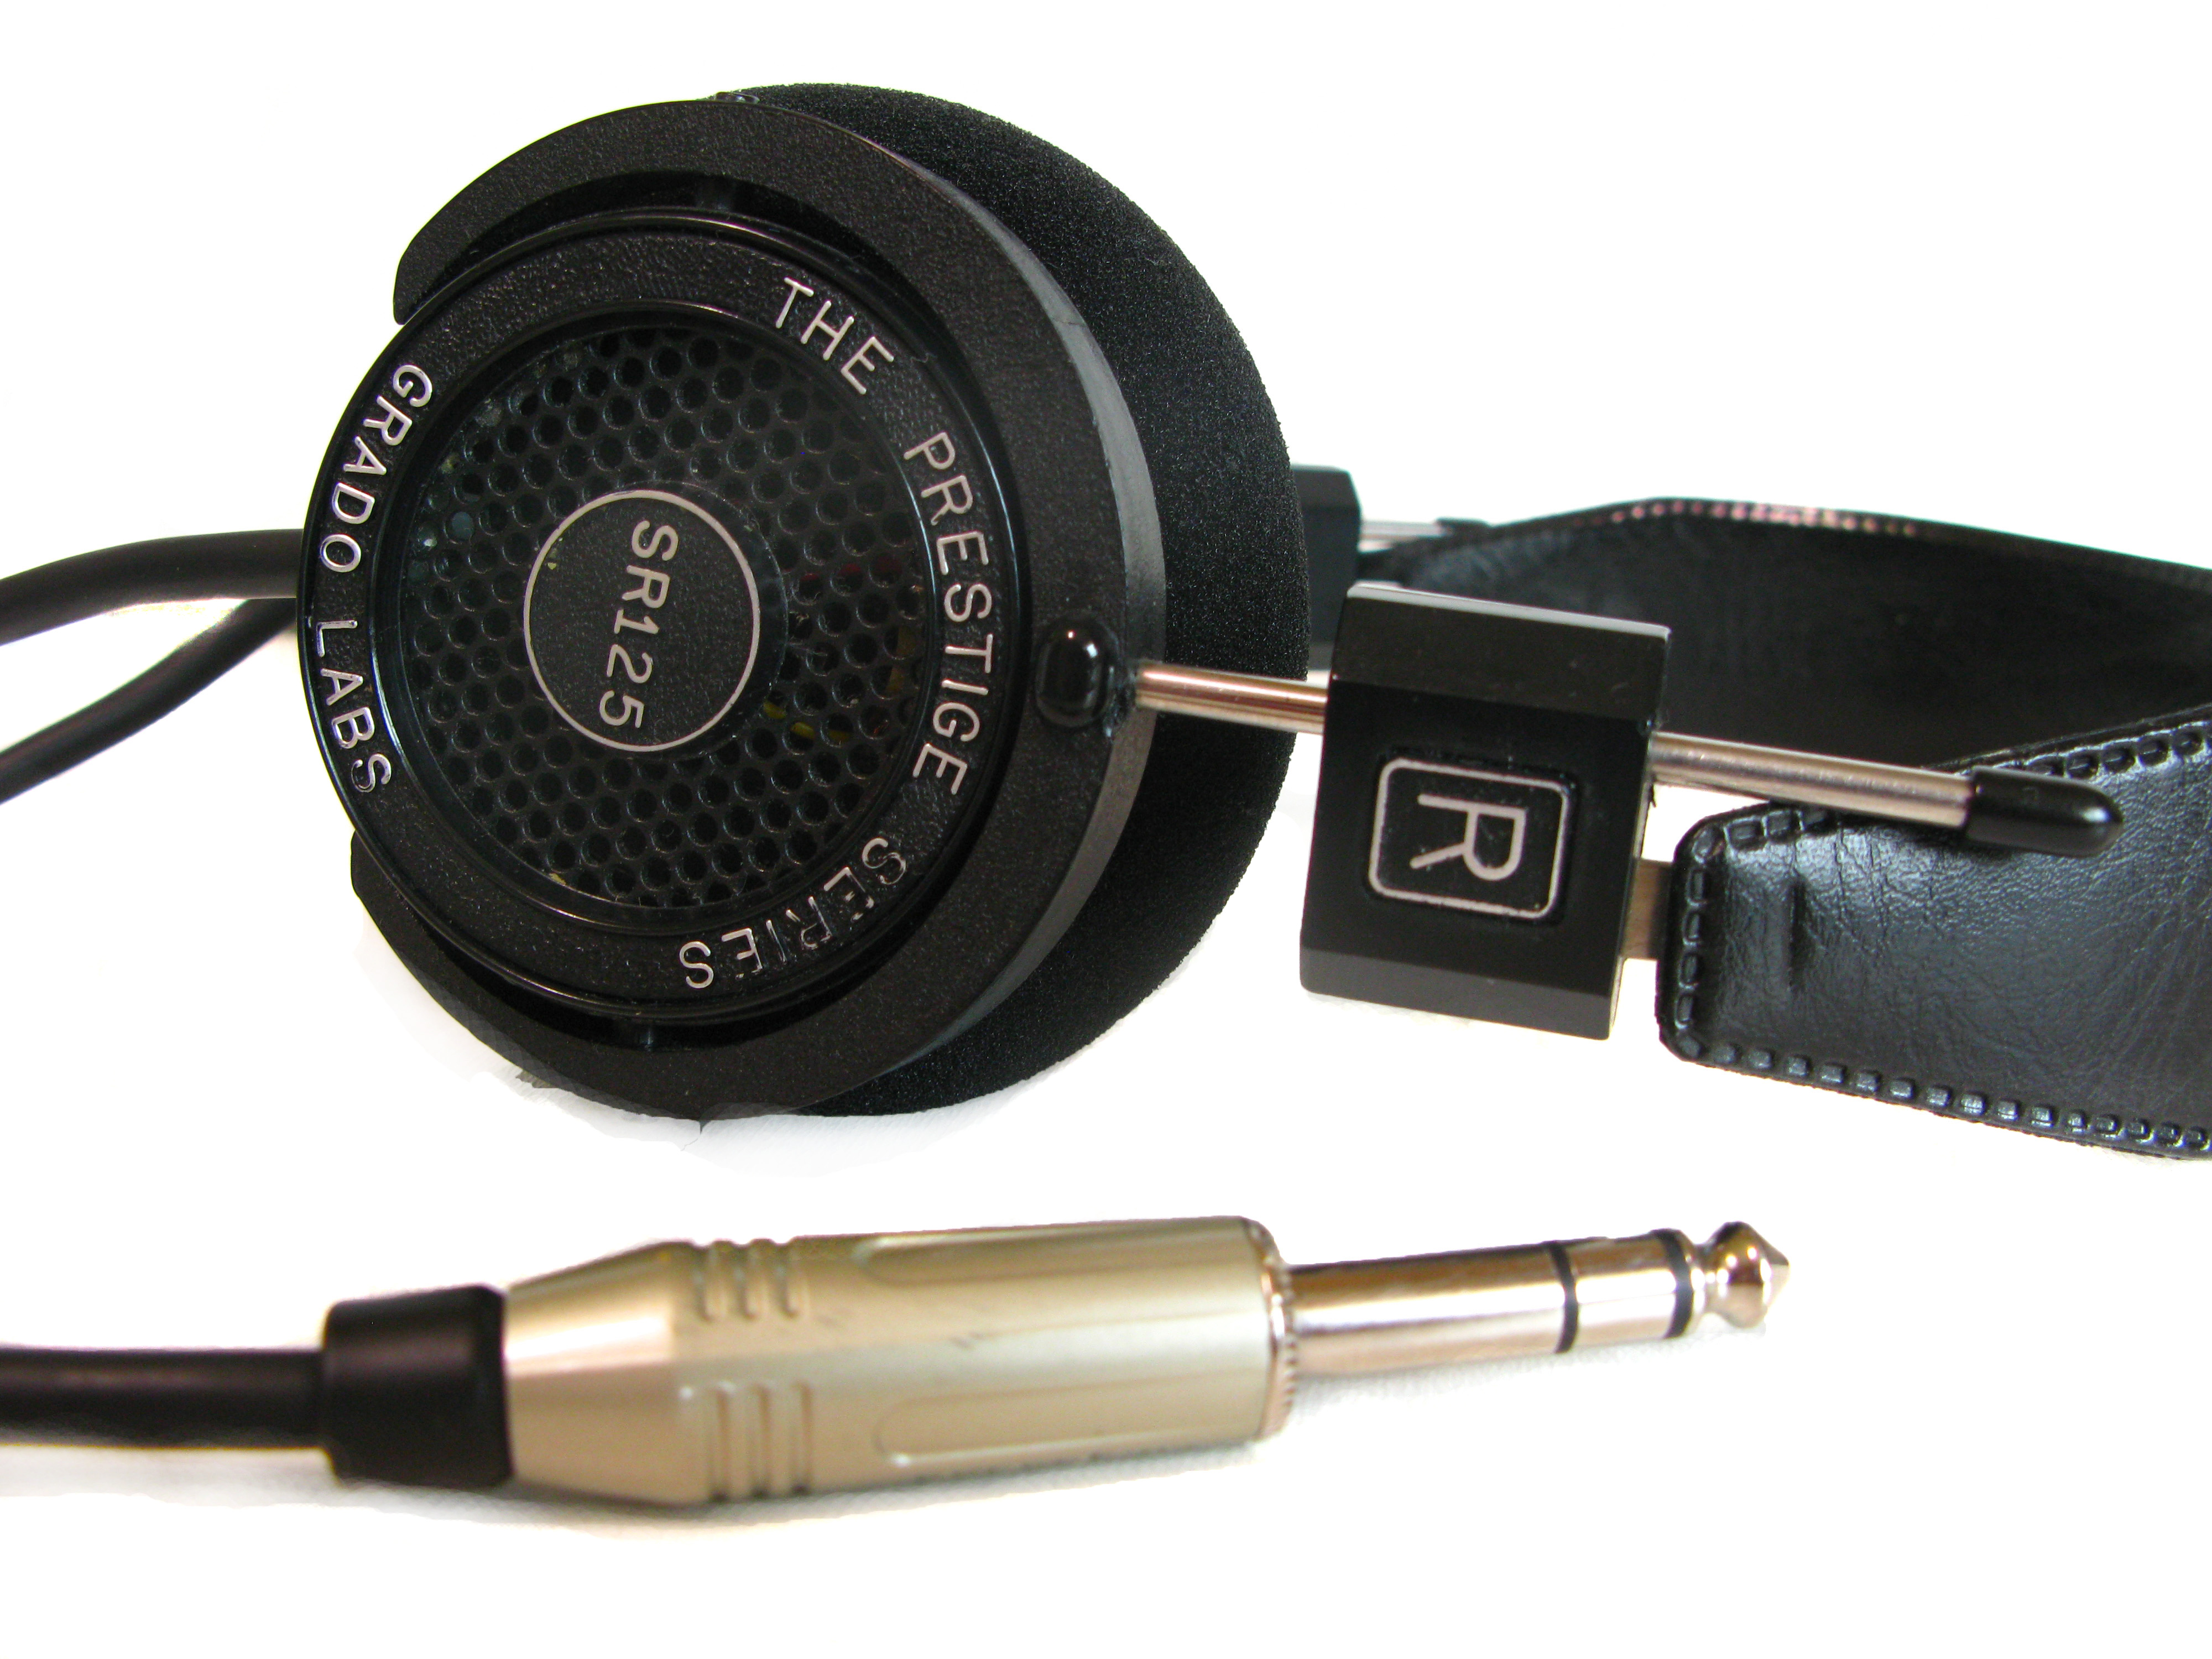 Grado Fan Club Page 1582 Headphone Reviews And Discussion Headphones Wiring Diagram A Quick Retouch With Solder Pair Of New Pads Theyre Bringing Me Awesome Amounts Enjoyment